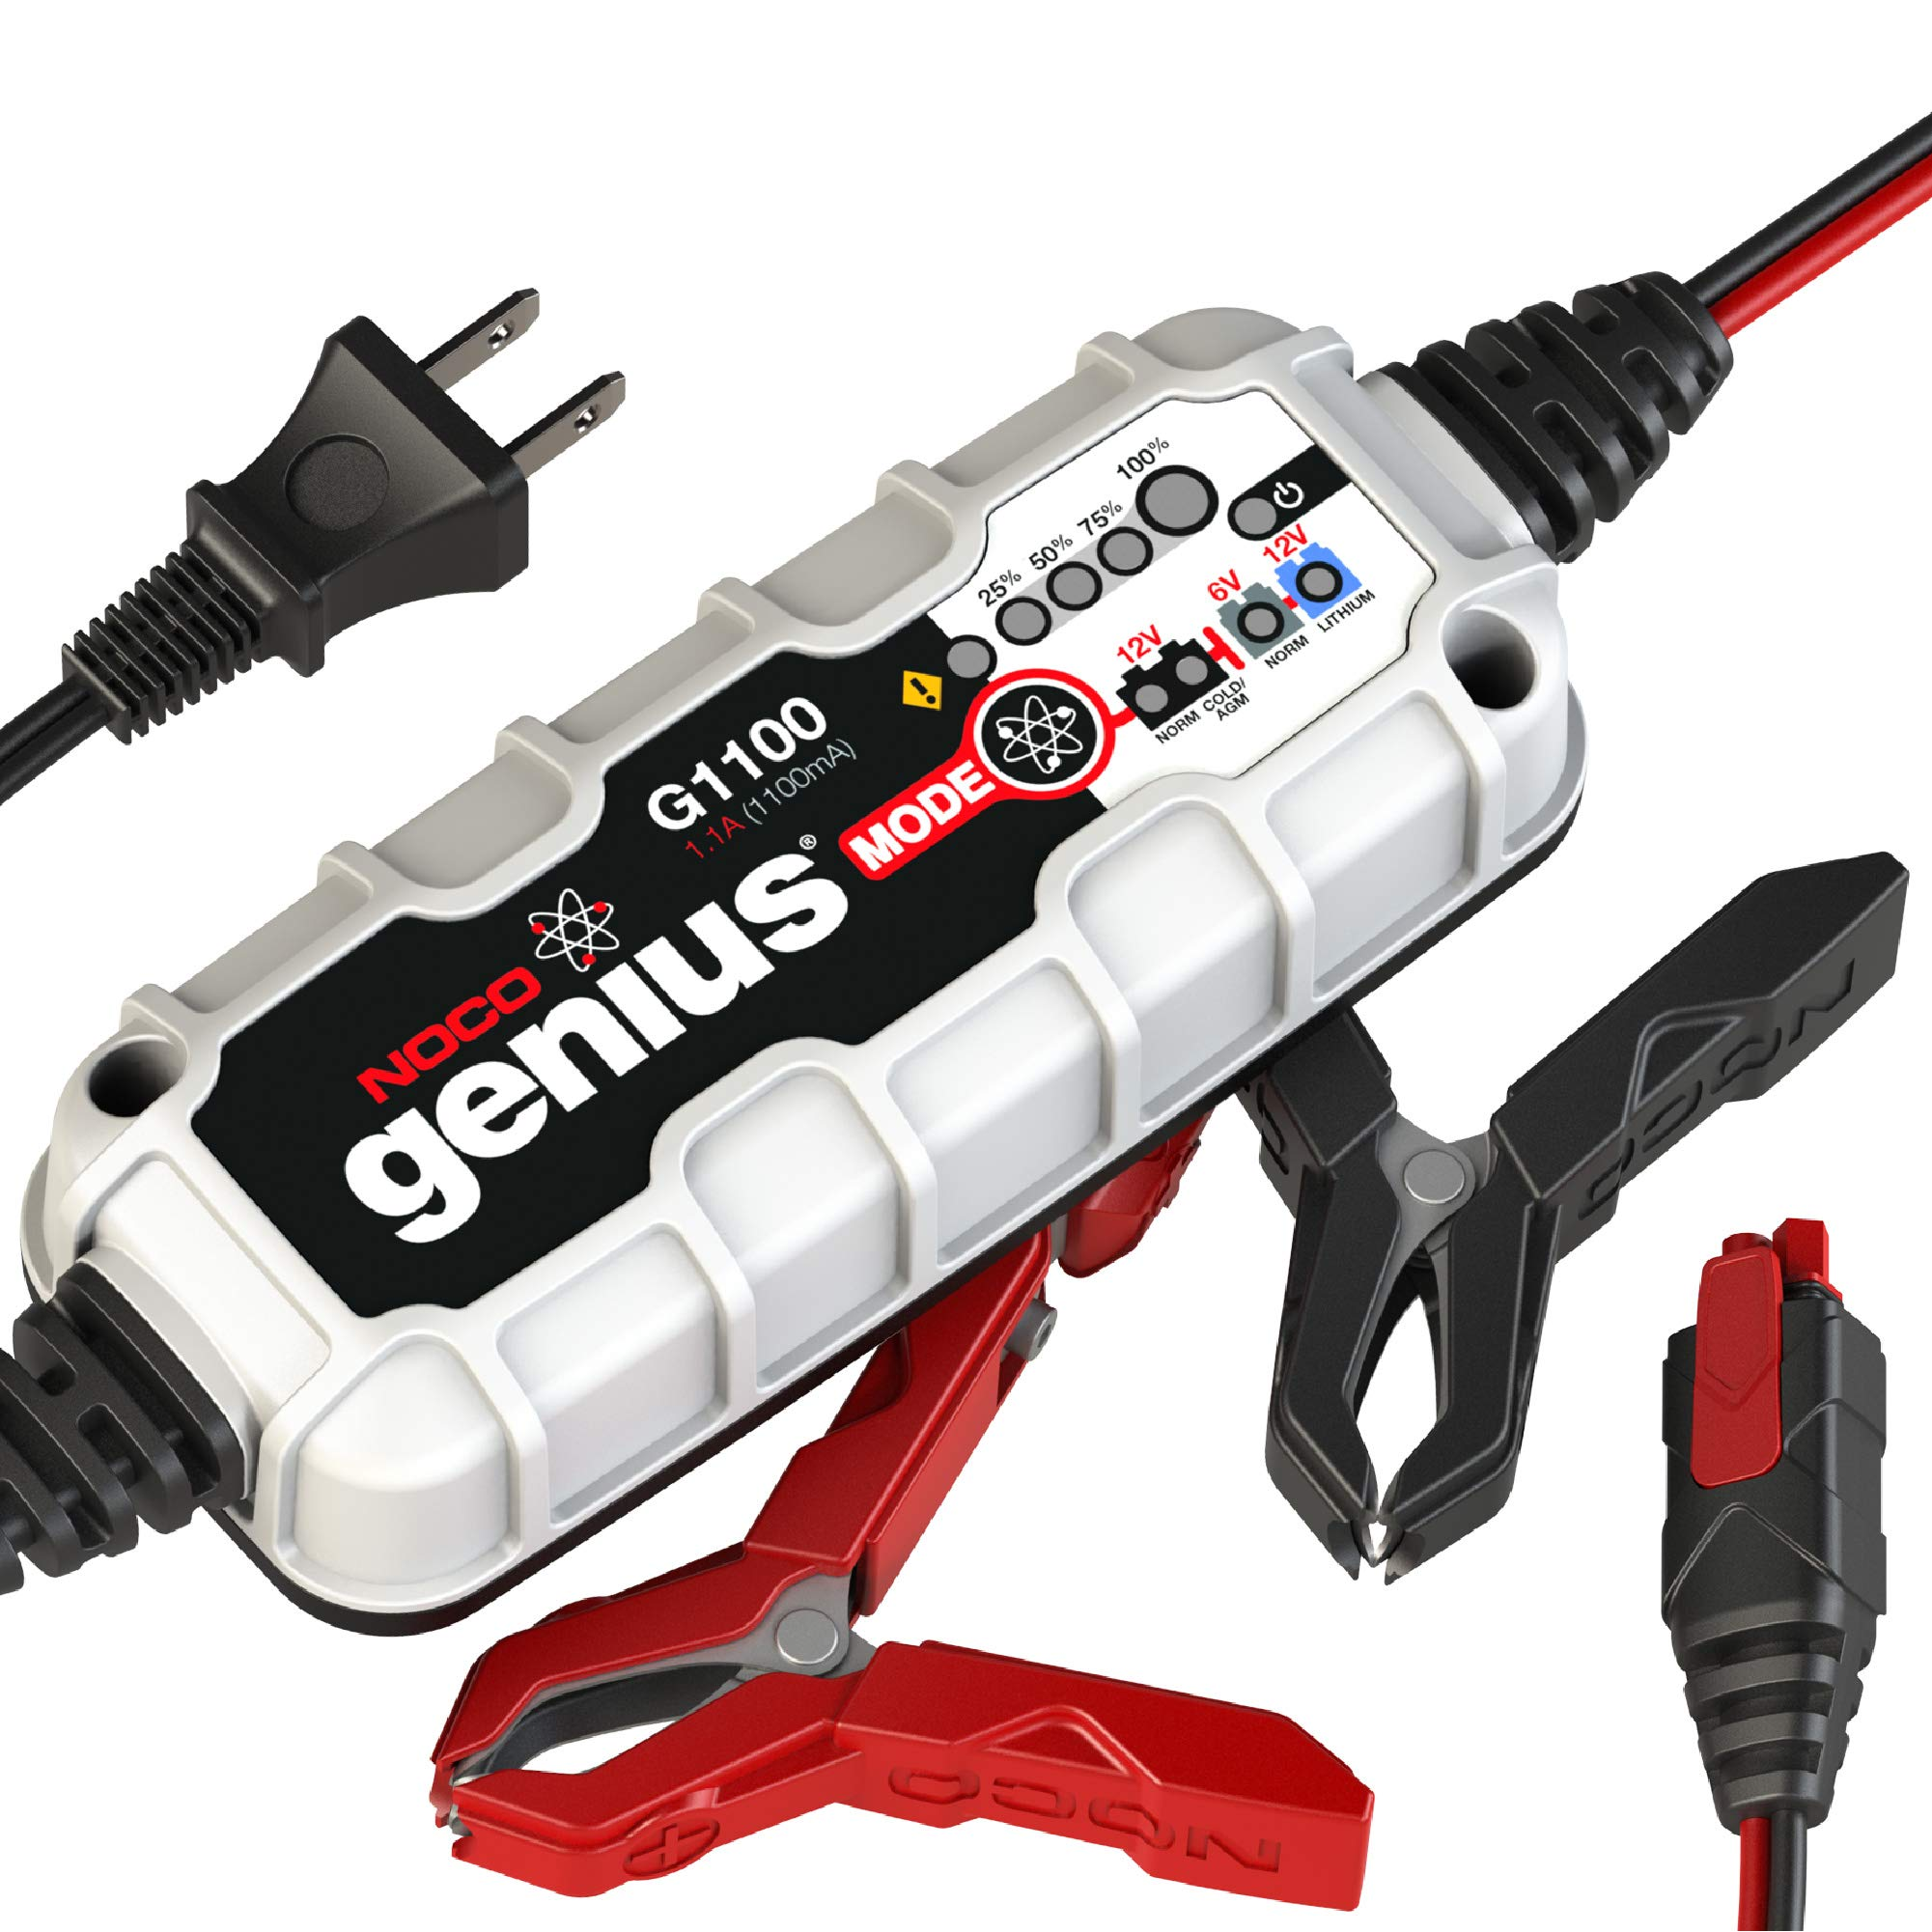 NOCO Genius G1100 6V/12V 1.1 Amp Battery Charger and Maintainer,Gray